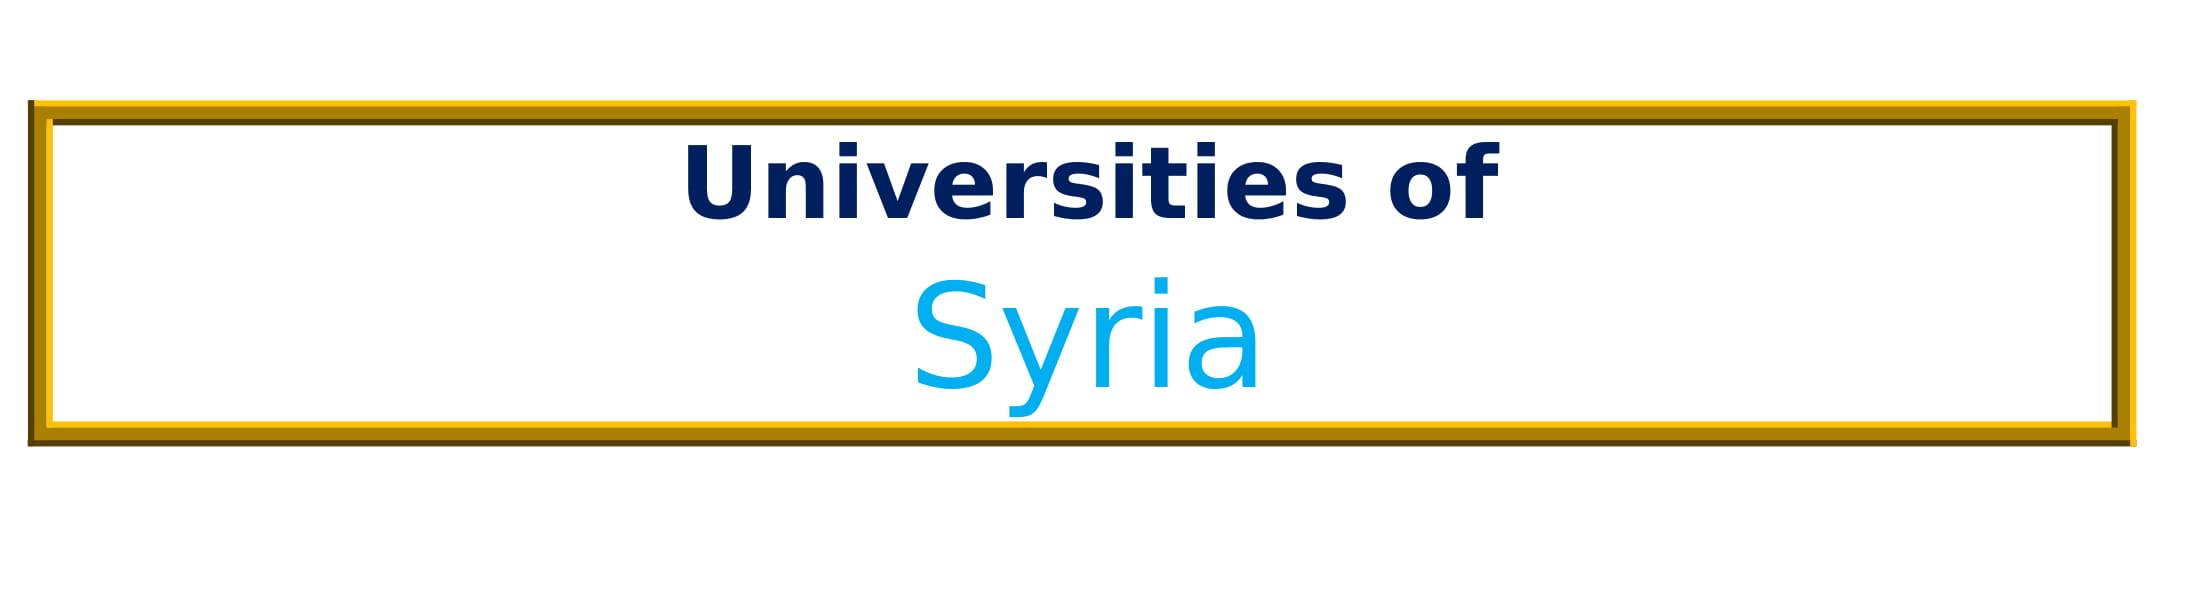 List of Universities in Syria